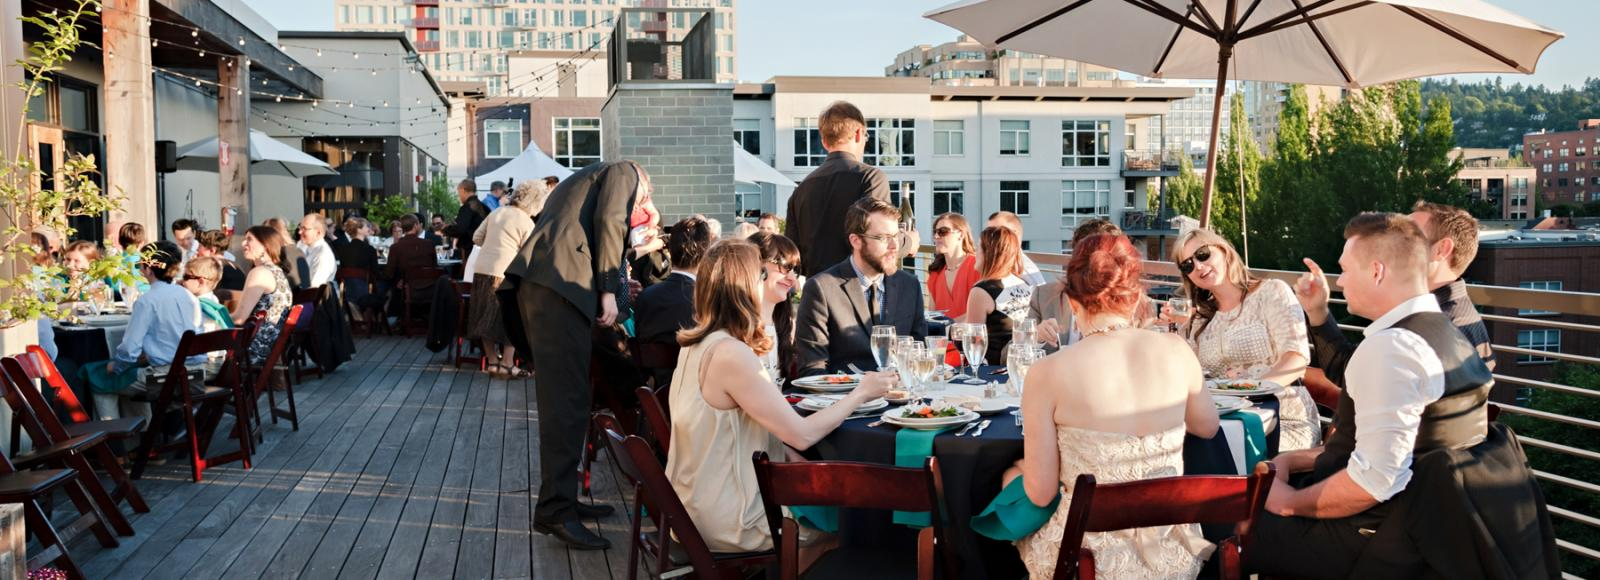 Guests dining on the roof for a wedding reception